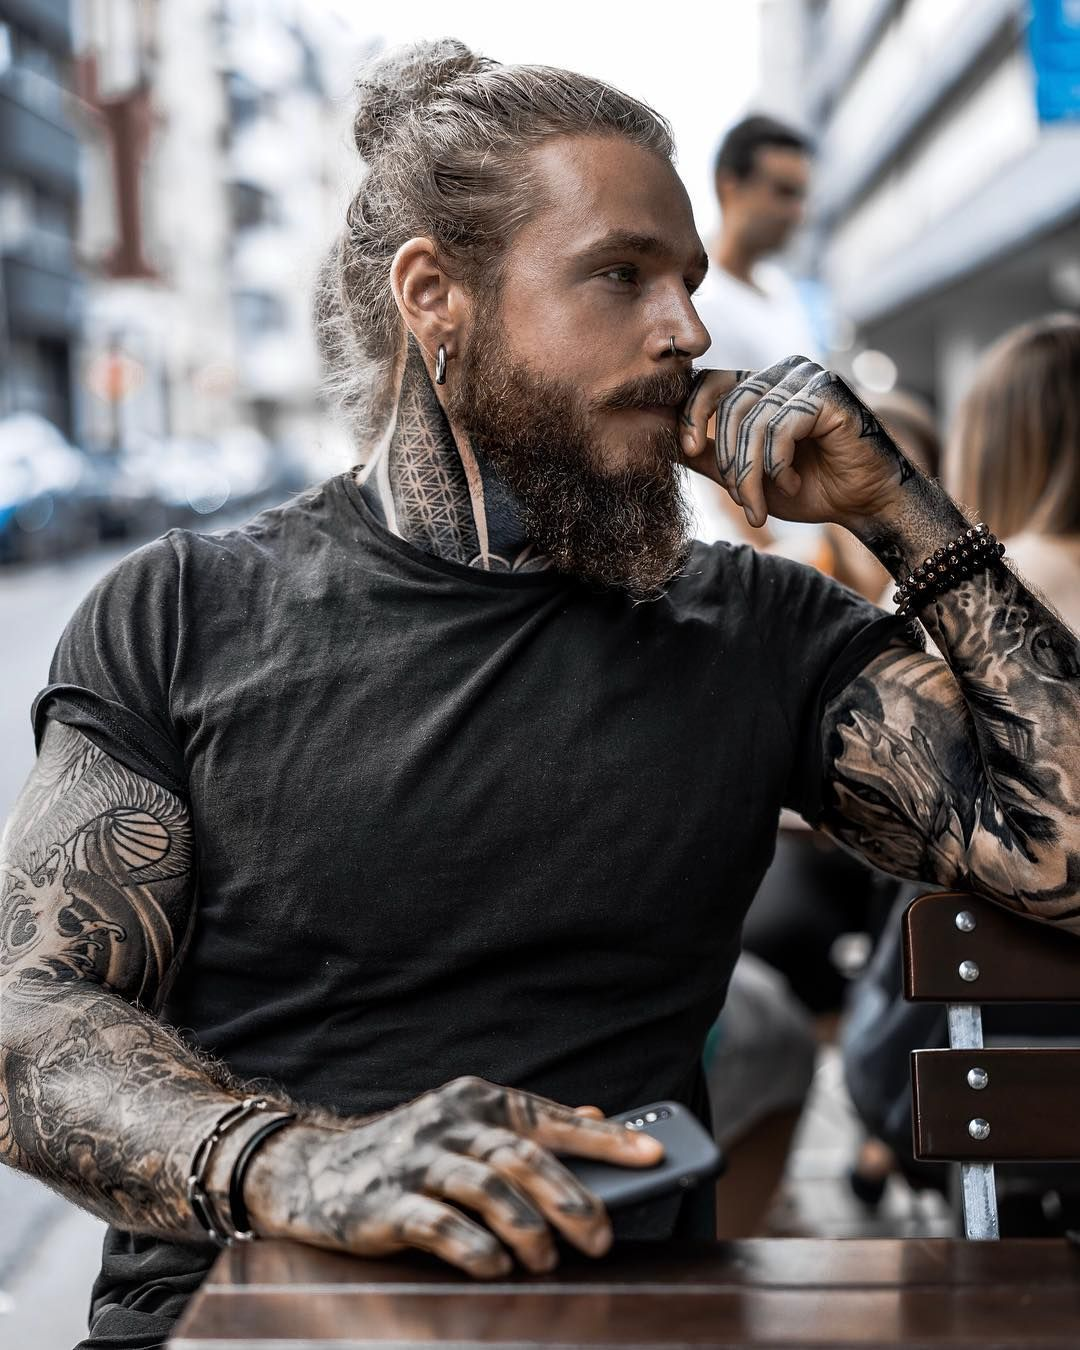 16+ Stunning Hot guys with tattoos hipster ideas